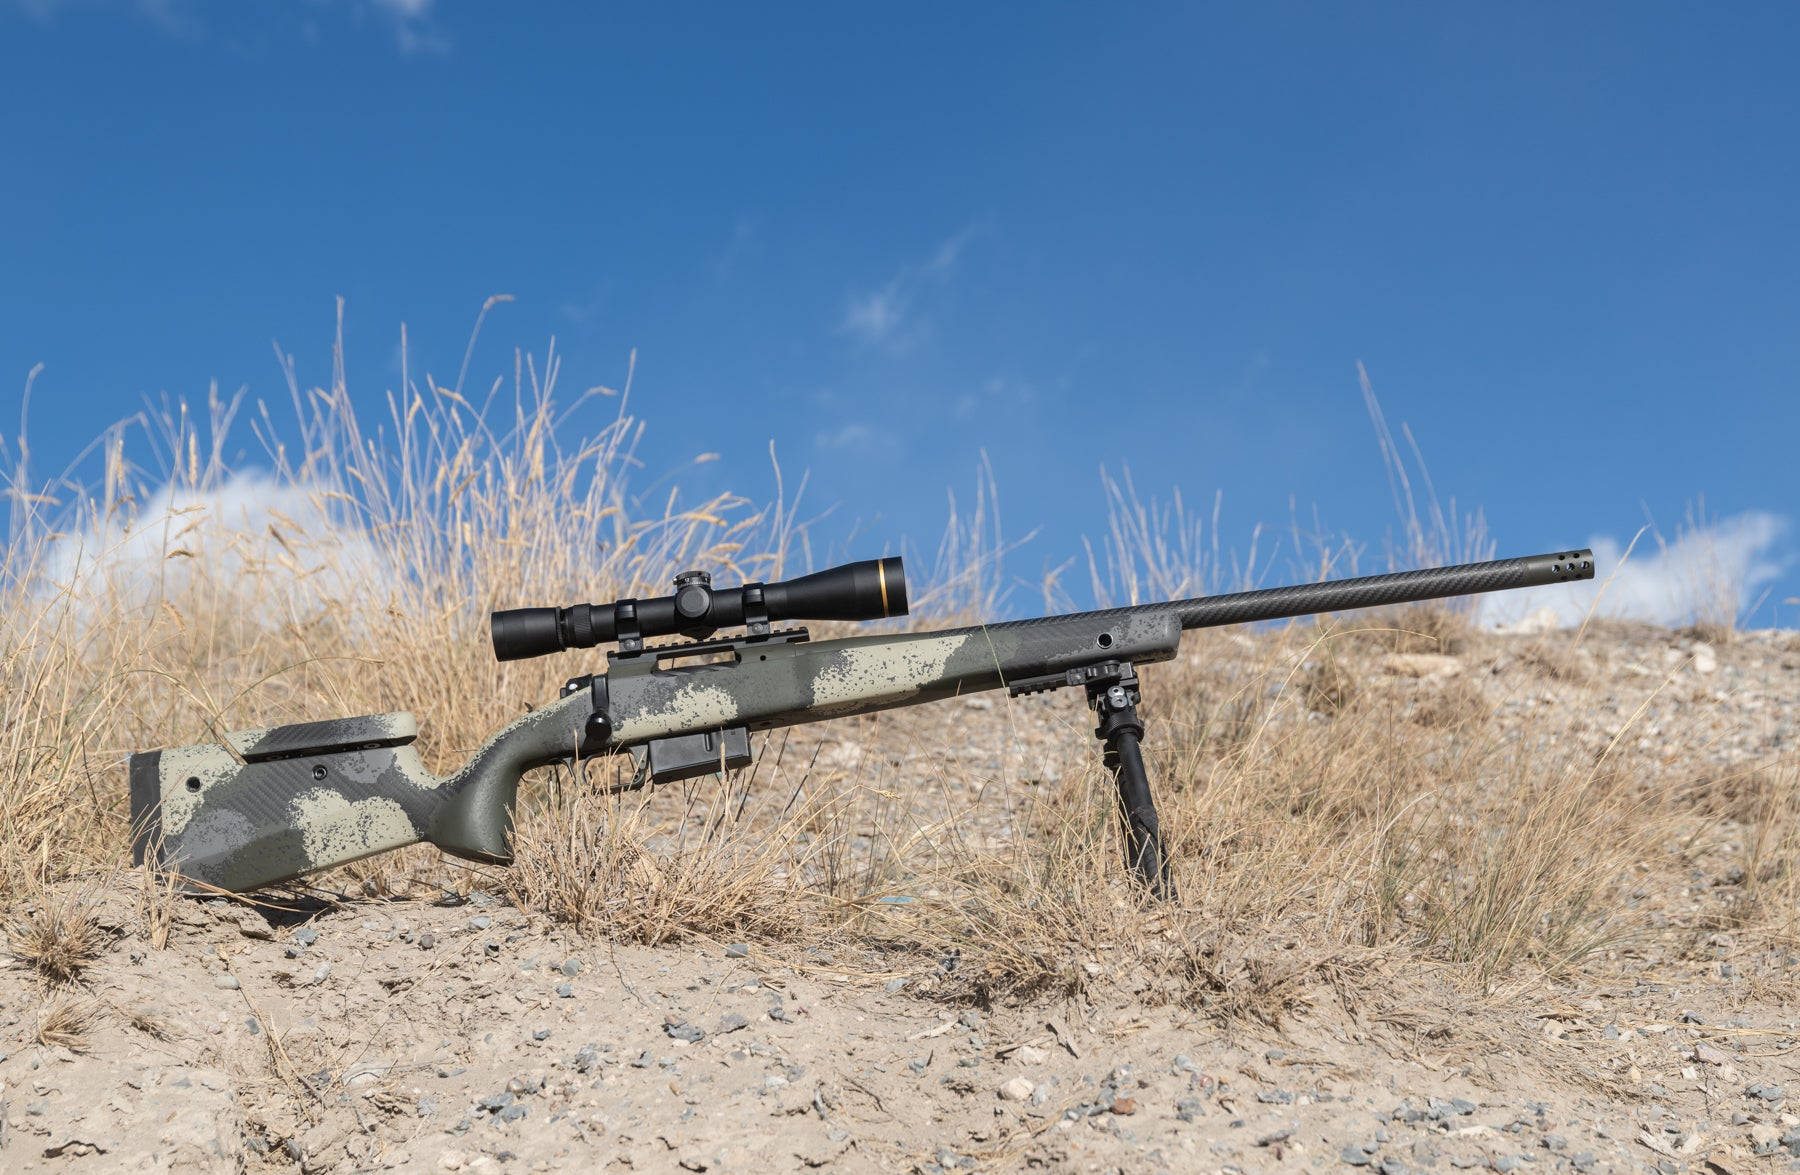 Springfield Gets Into Hunting Bolt Guns with New Model 2020 Line